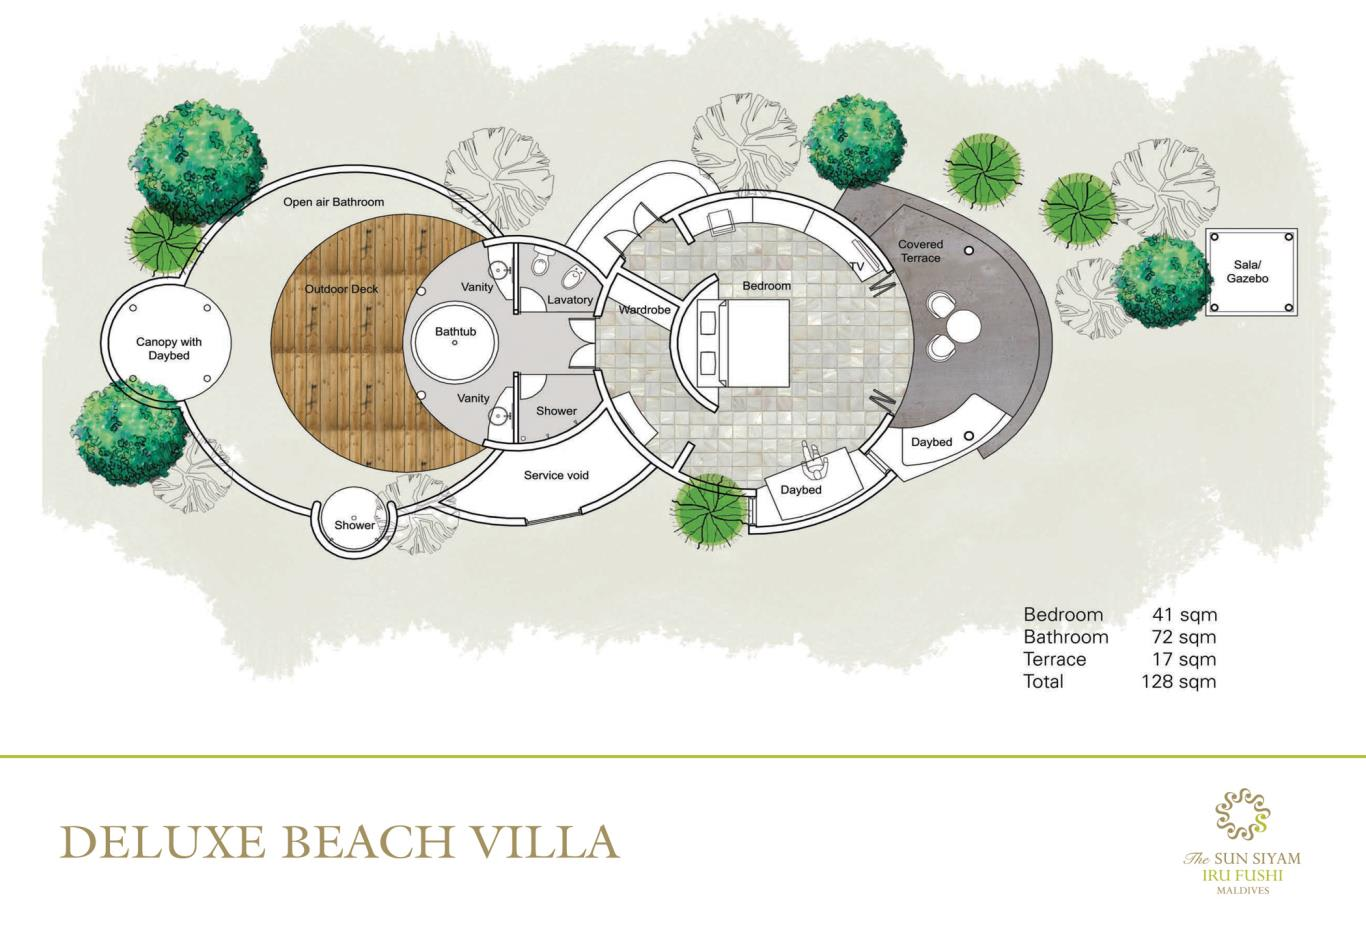 Deluxe Beach Villa Floorplan